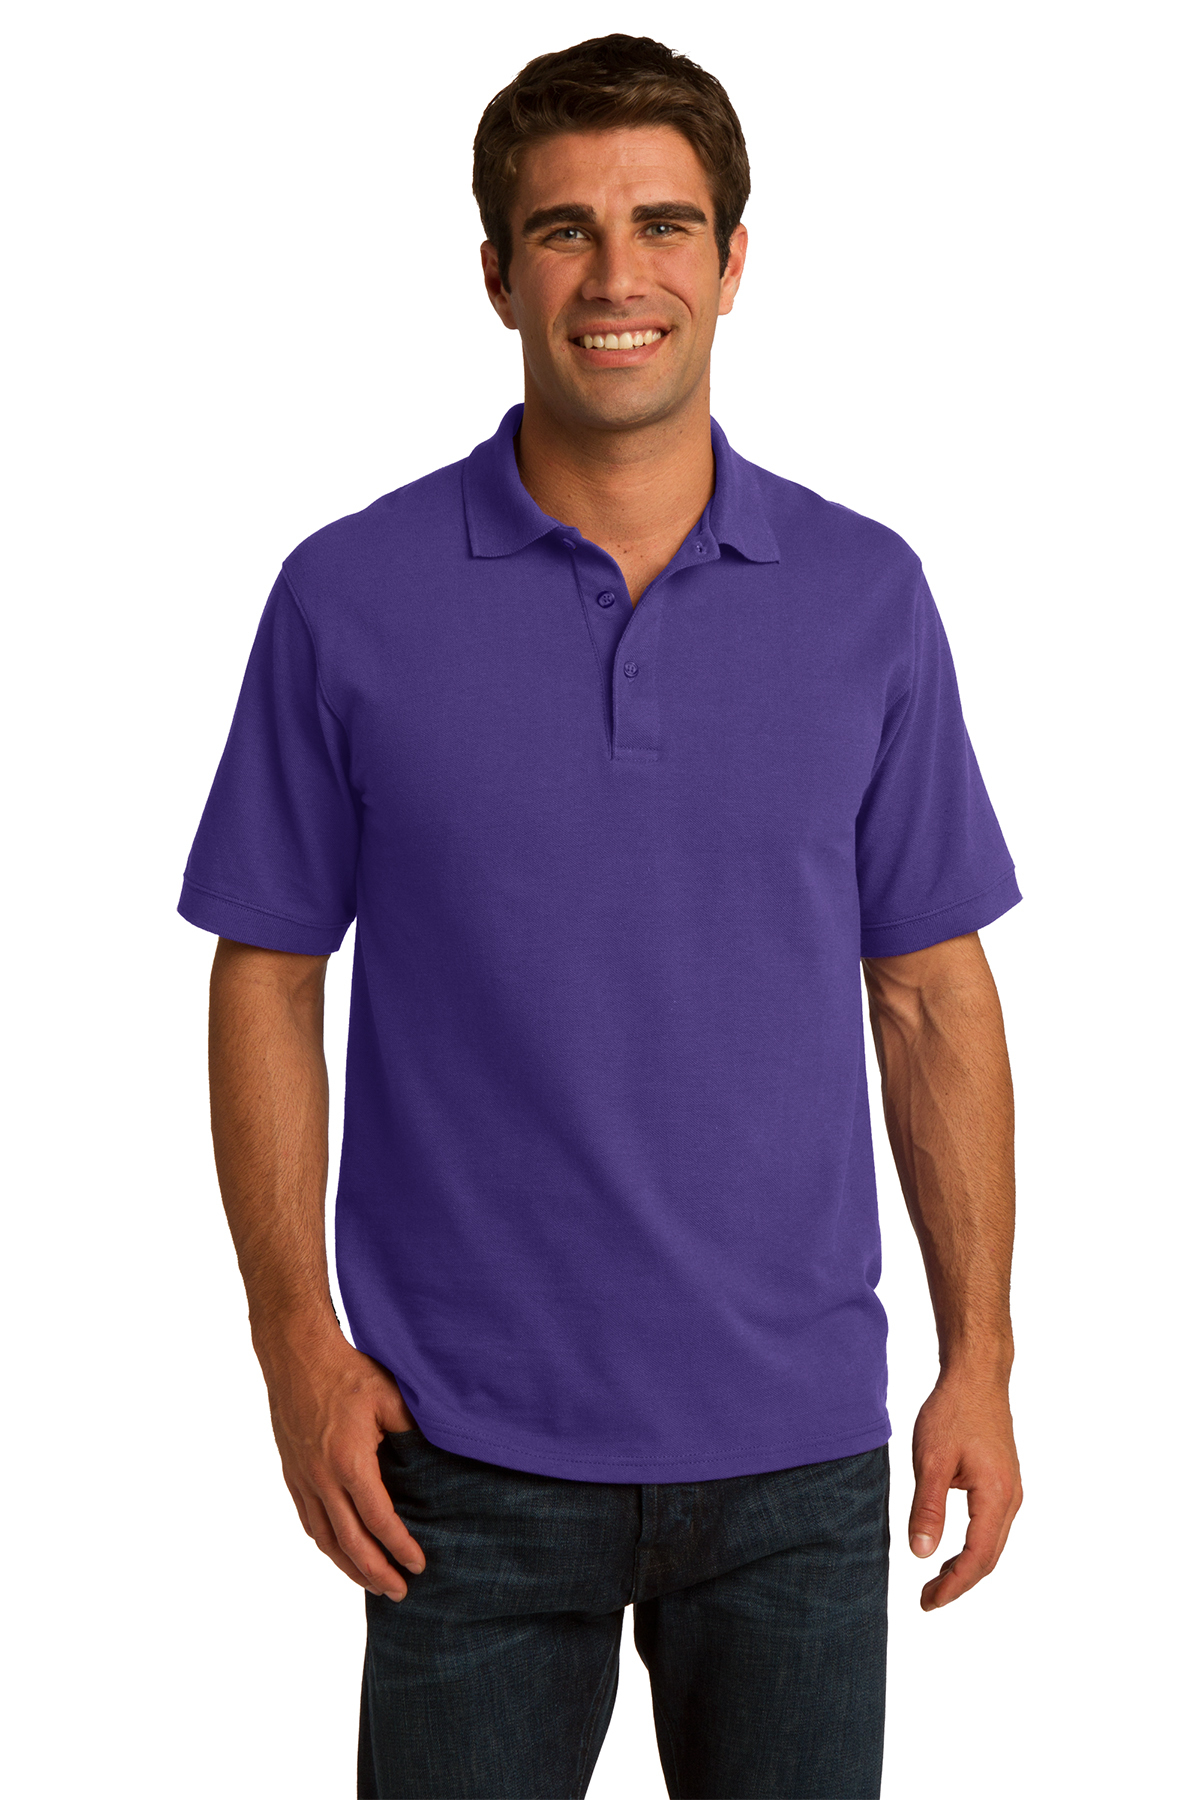 KP155 SALE Port & Company® Core Blend Pique Polo